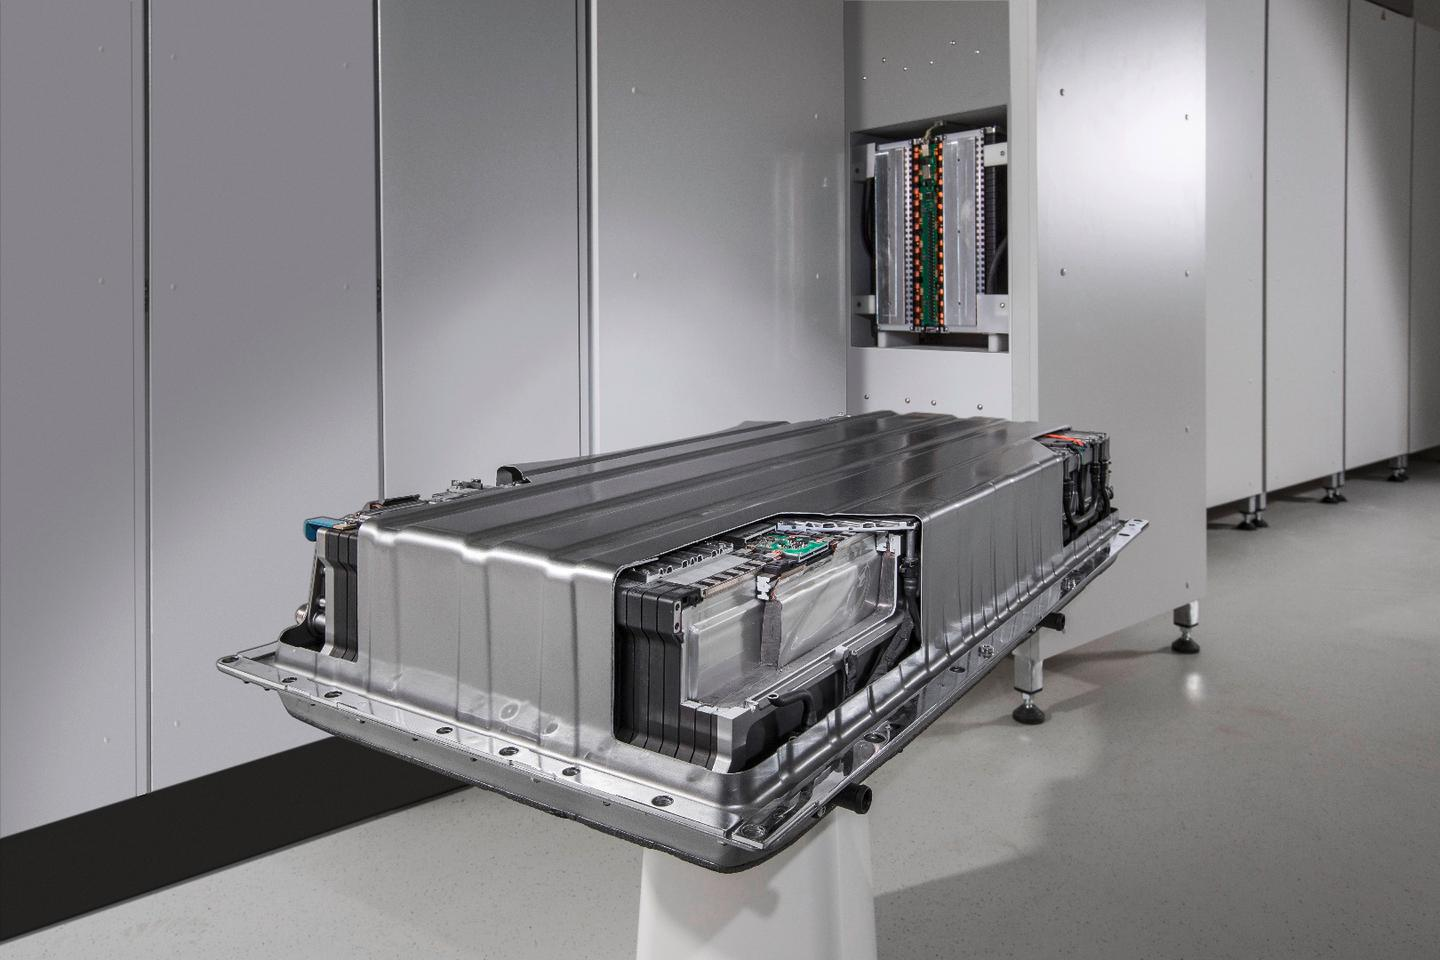 Since they were developed for demanding service on board cars, Mercedes-Benz says its energy storage units meet the very highest safety and quality standards